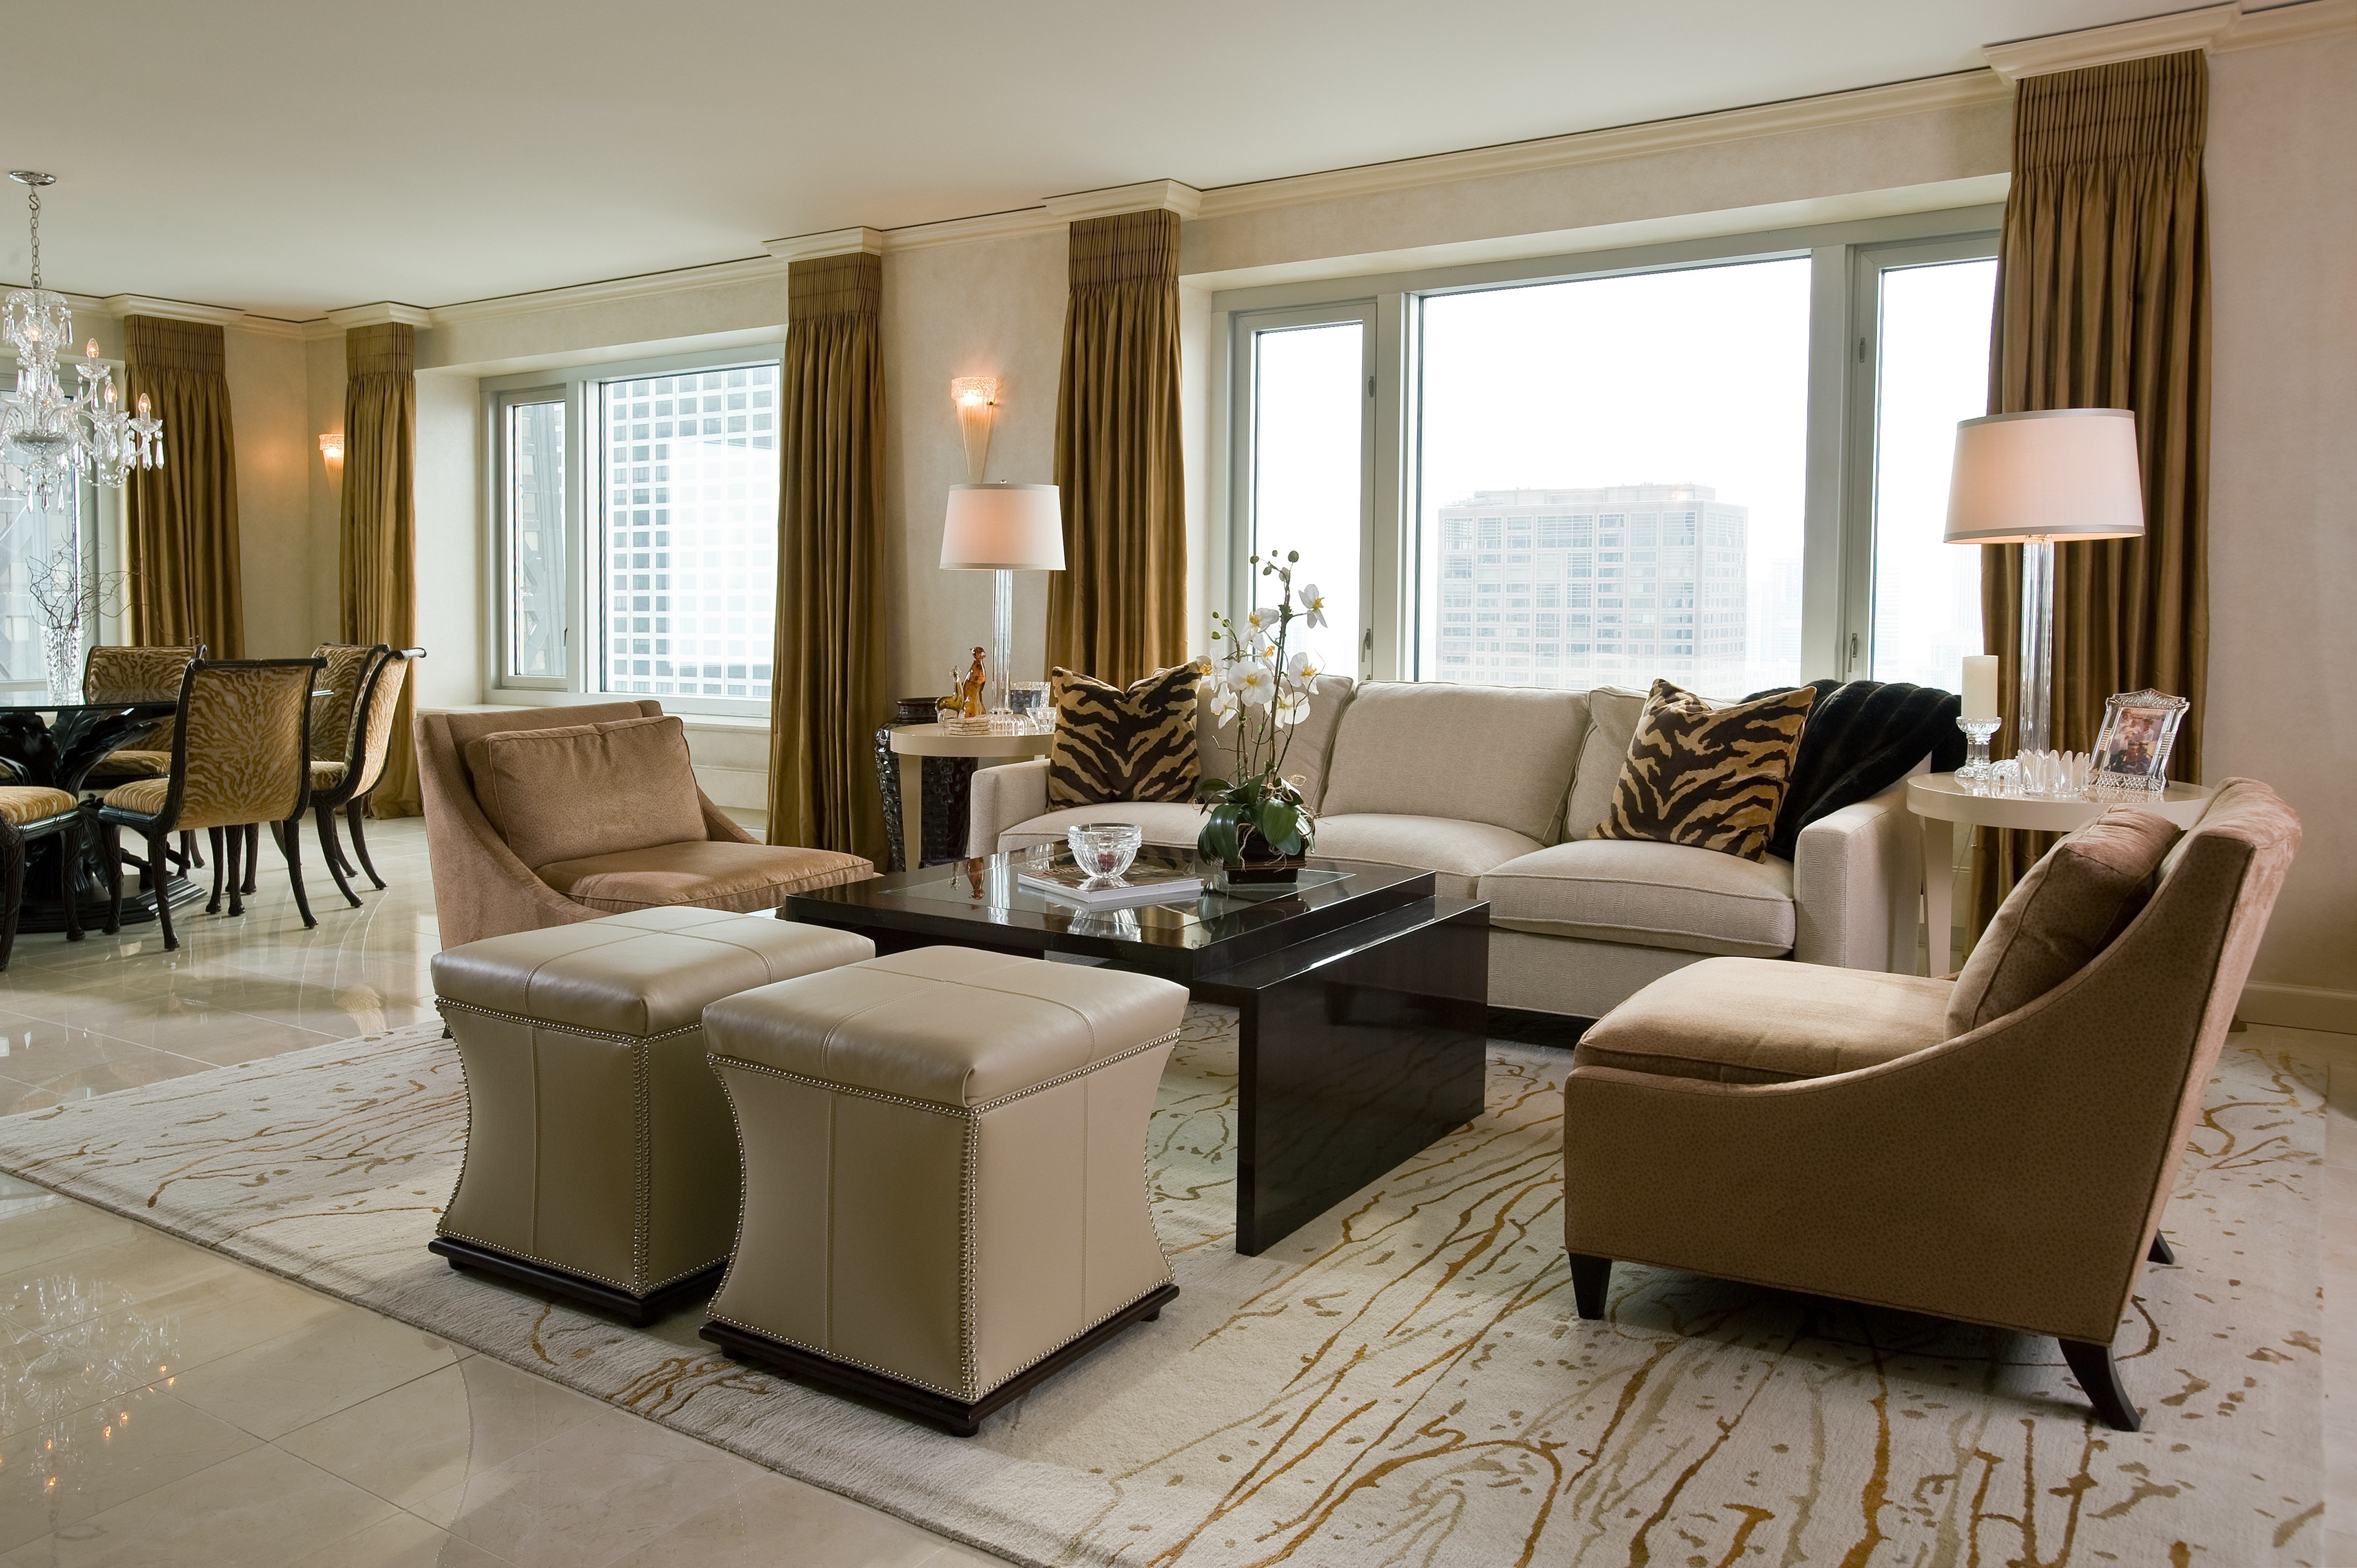 Unique Living Room Decorating Ideas Interior Living Room Layout Ideas to Helps the Space Feel